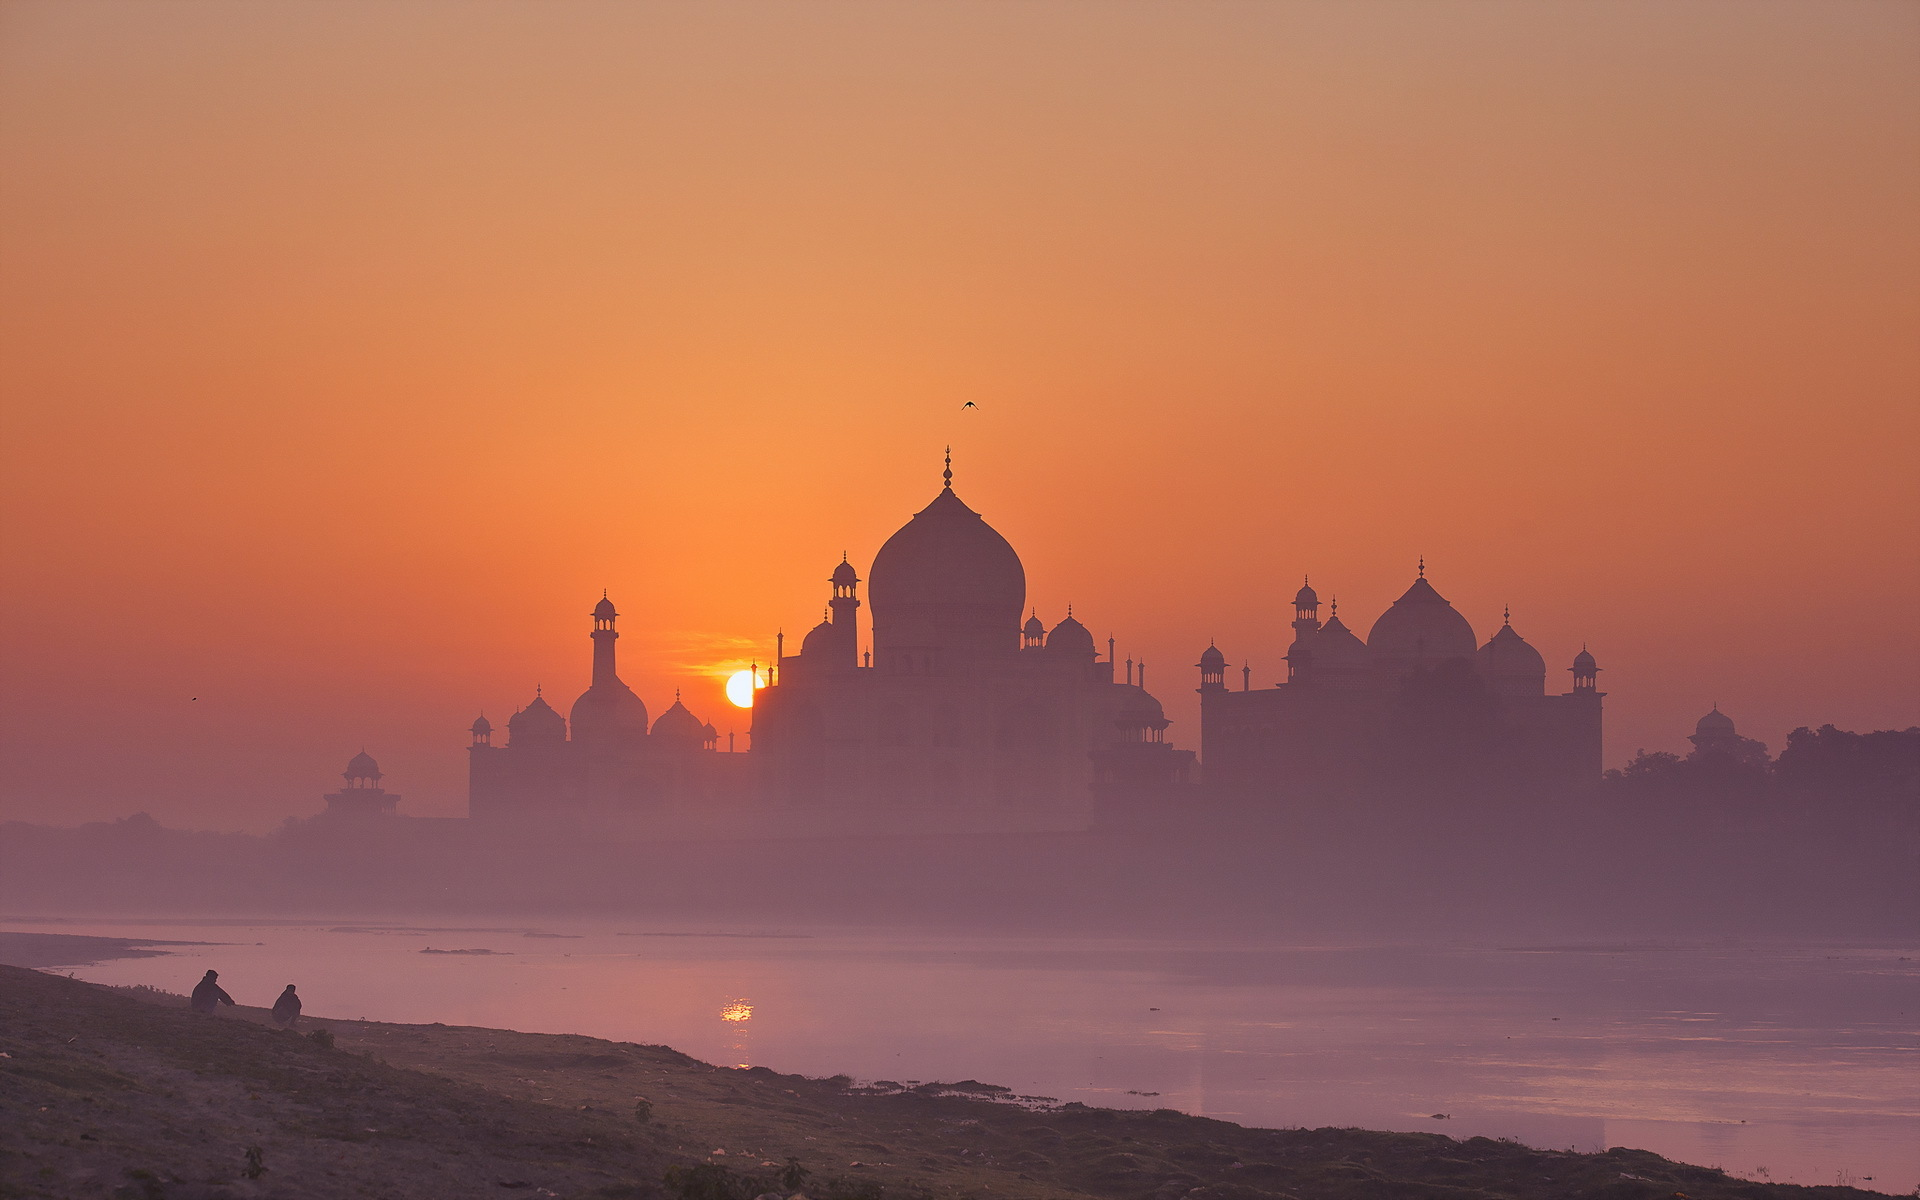 Taj Mahal Hd Wallpaper Crown Of Palaces تاج محل Full Hd Fond D 233 Cran And Arri 232 Re